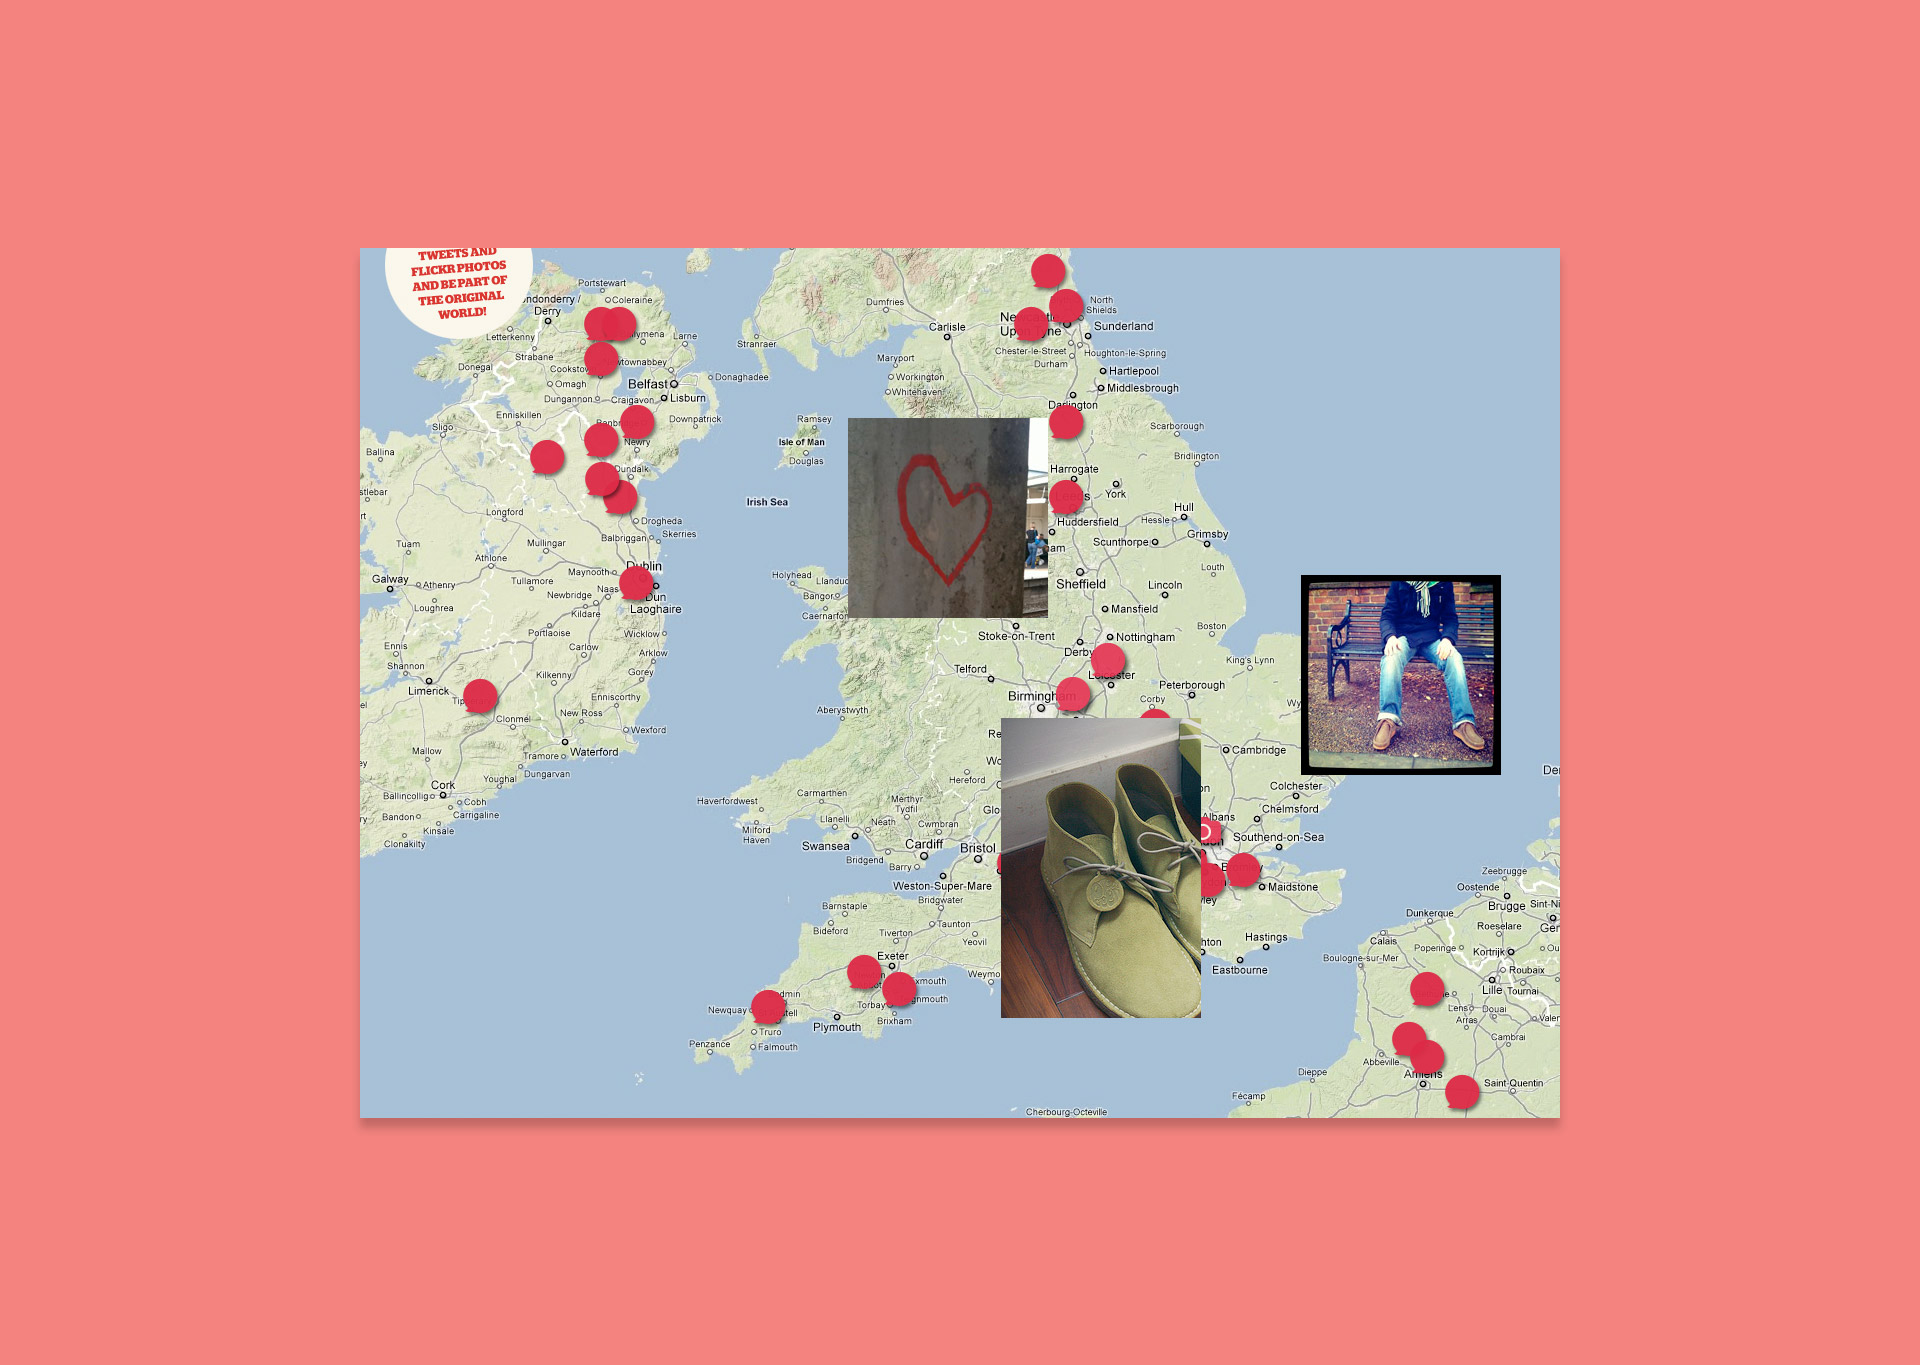 CaseStudy_ClarksOriginals_MapPink